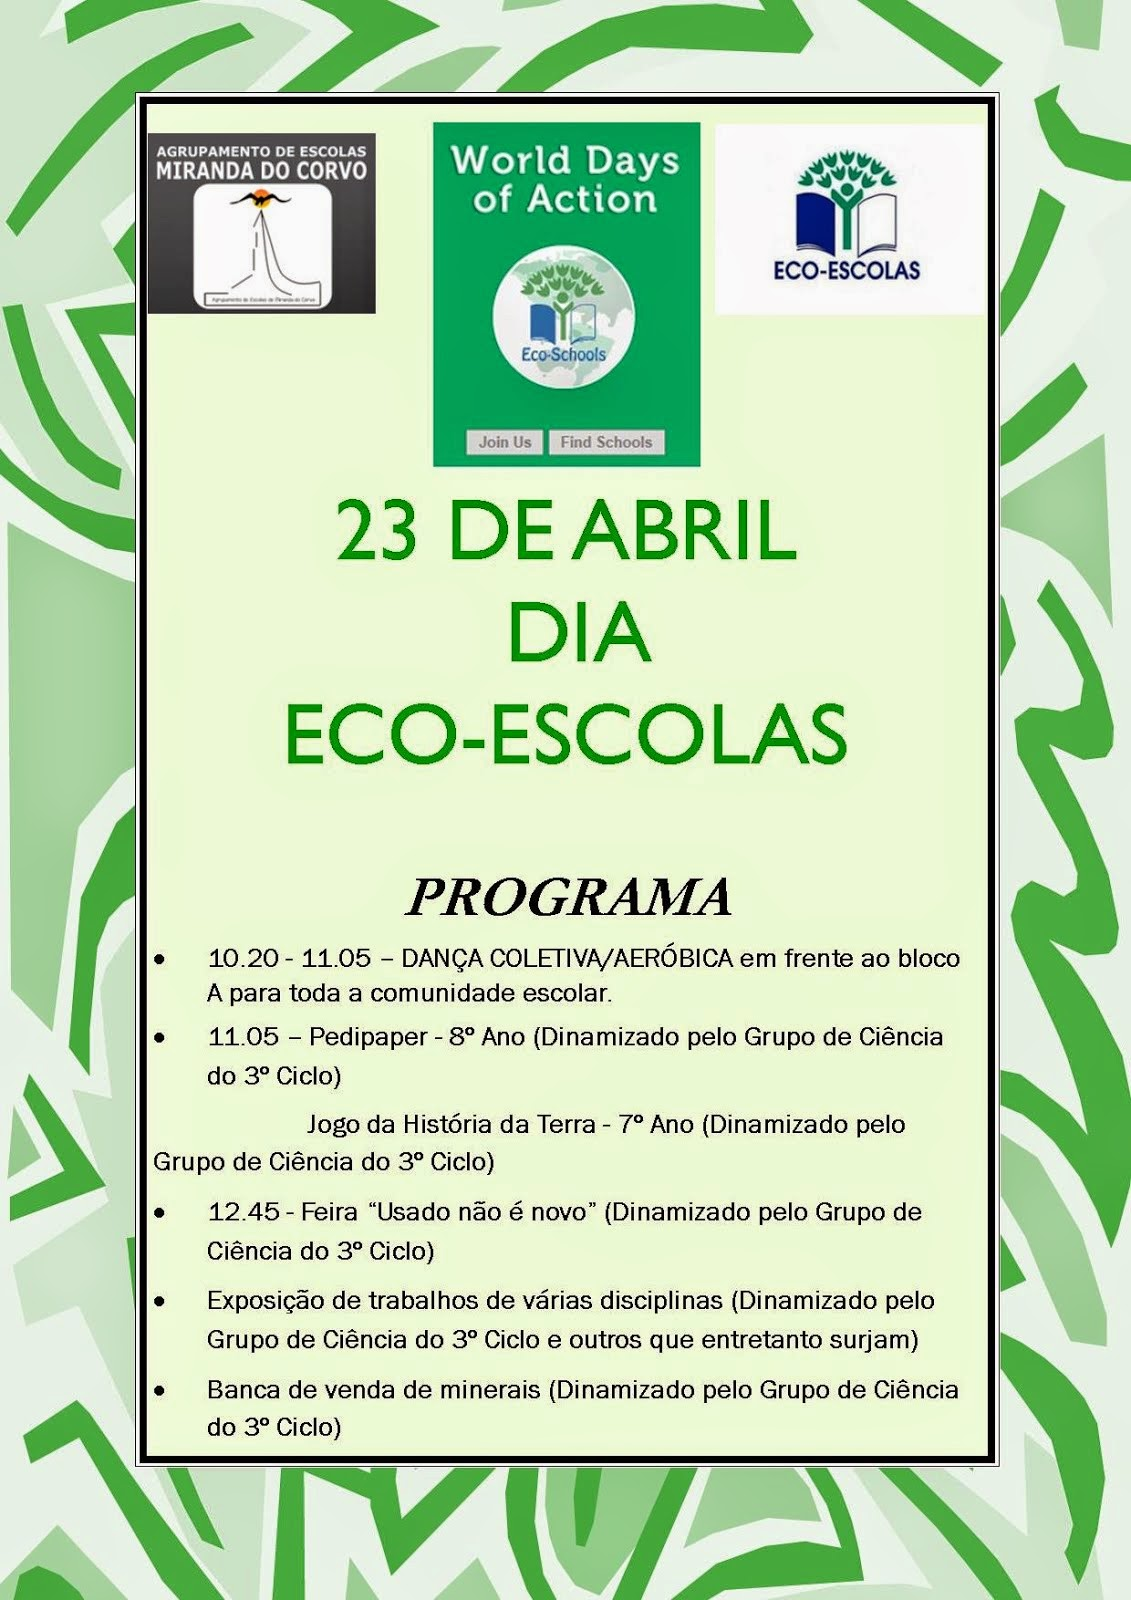 23 de Abril - Dia eco-escolas